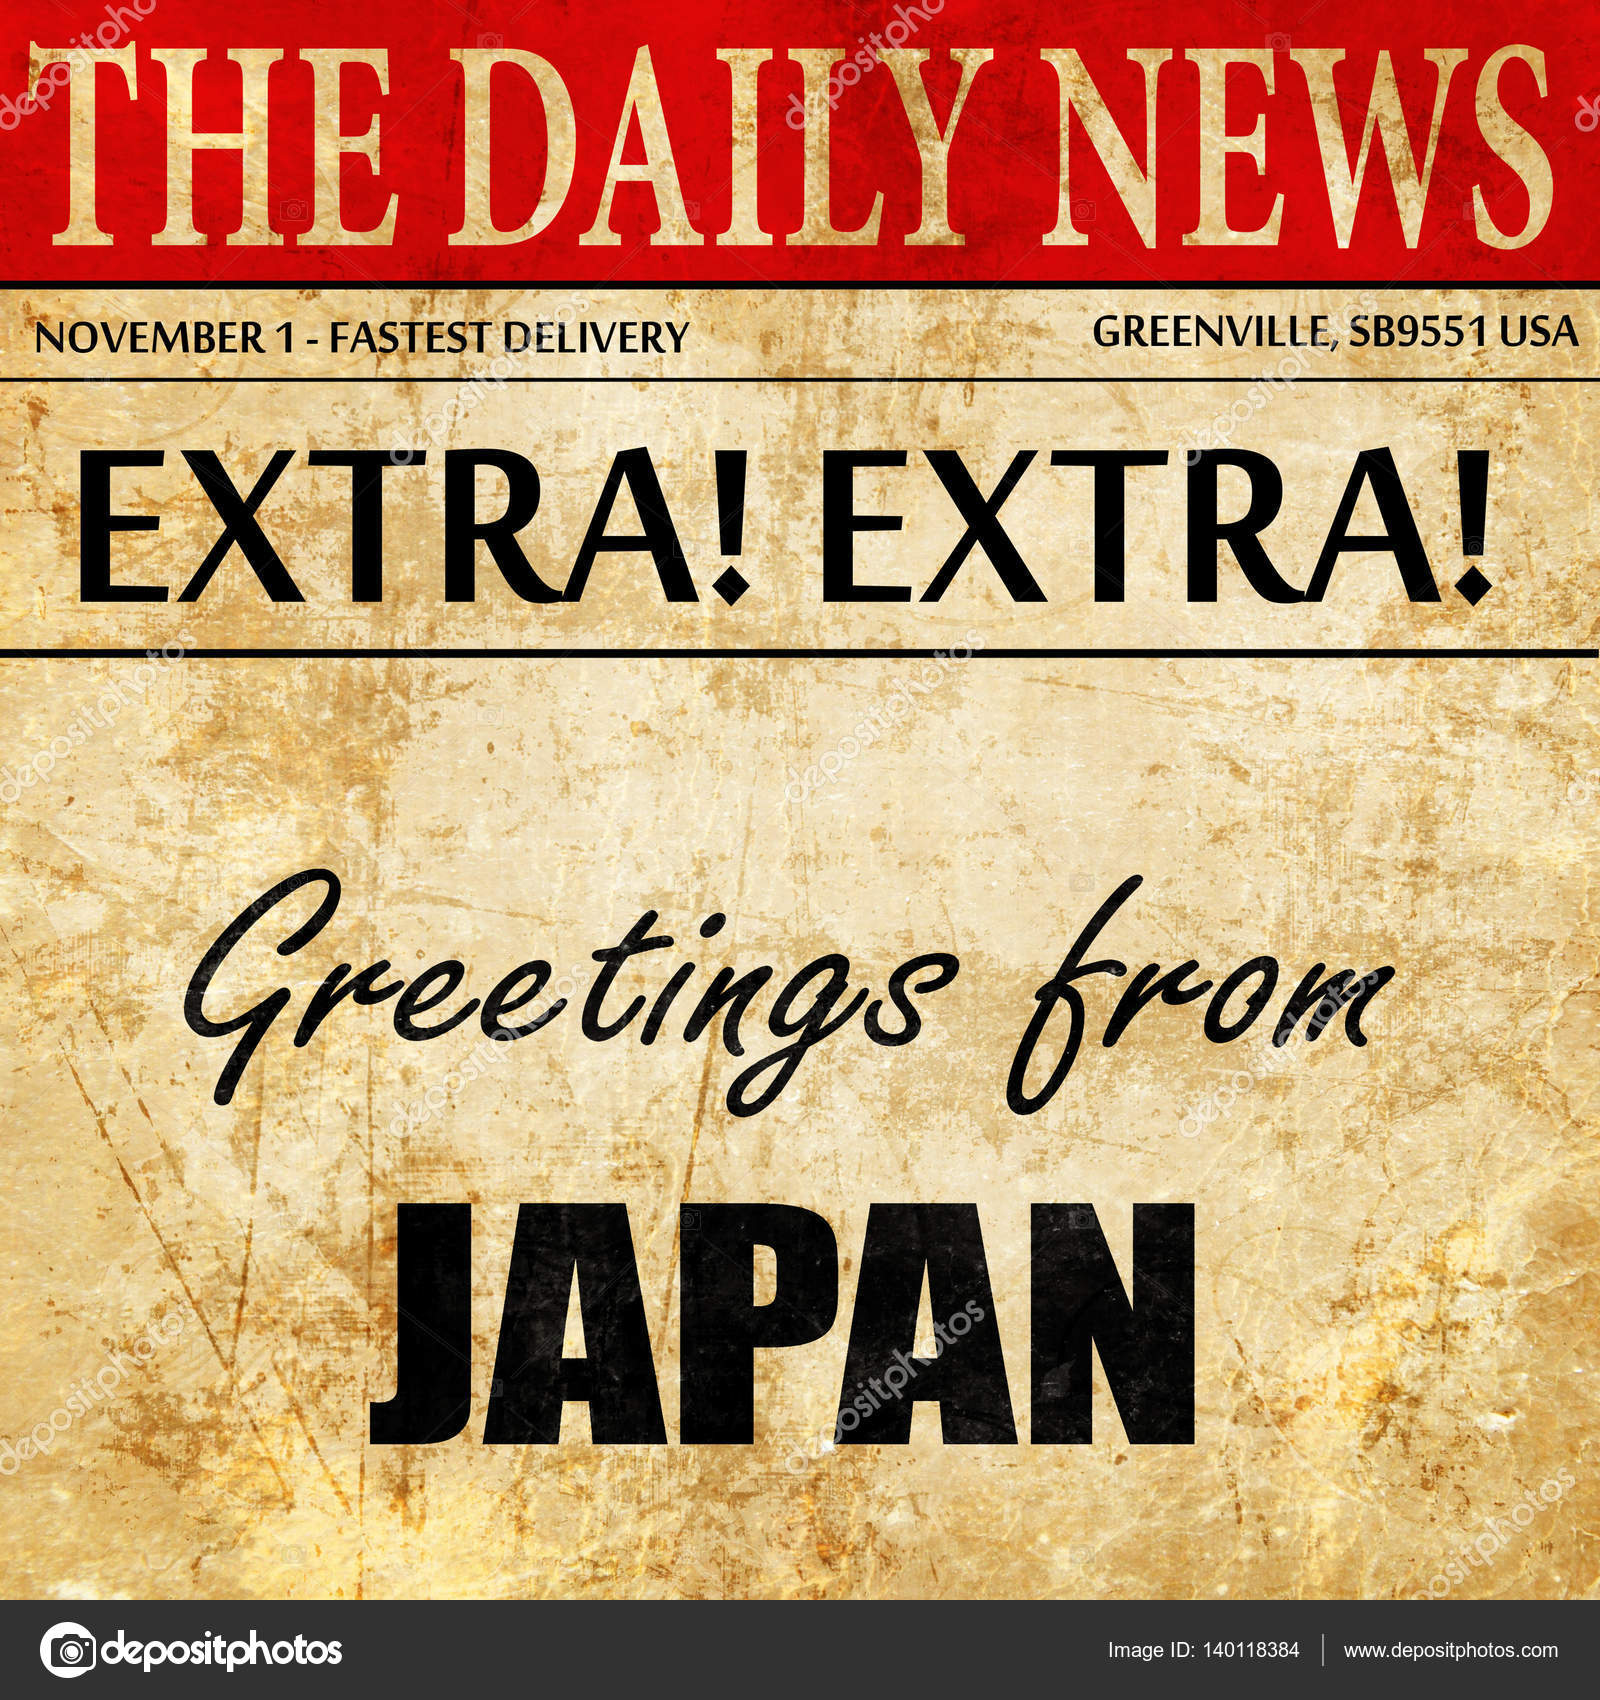 Greetings from japan newspaper article text stock photo greetings from japan newspaper article text stock photo m4hsunfo